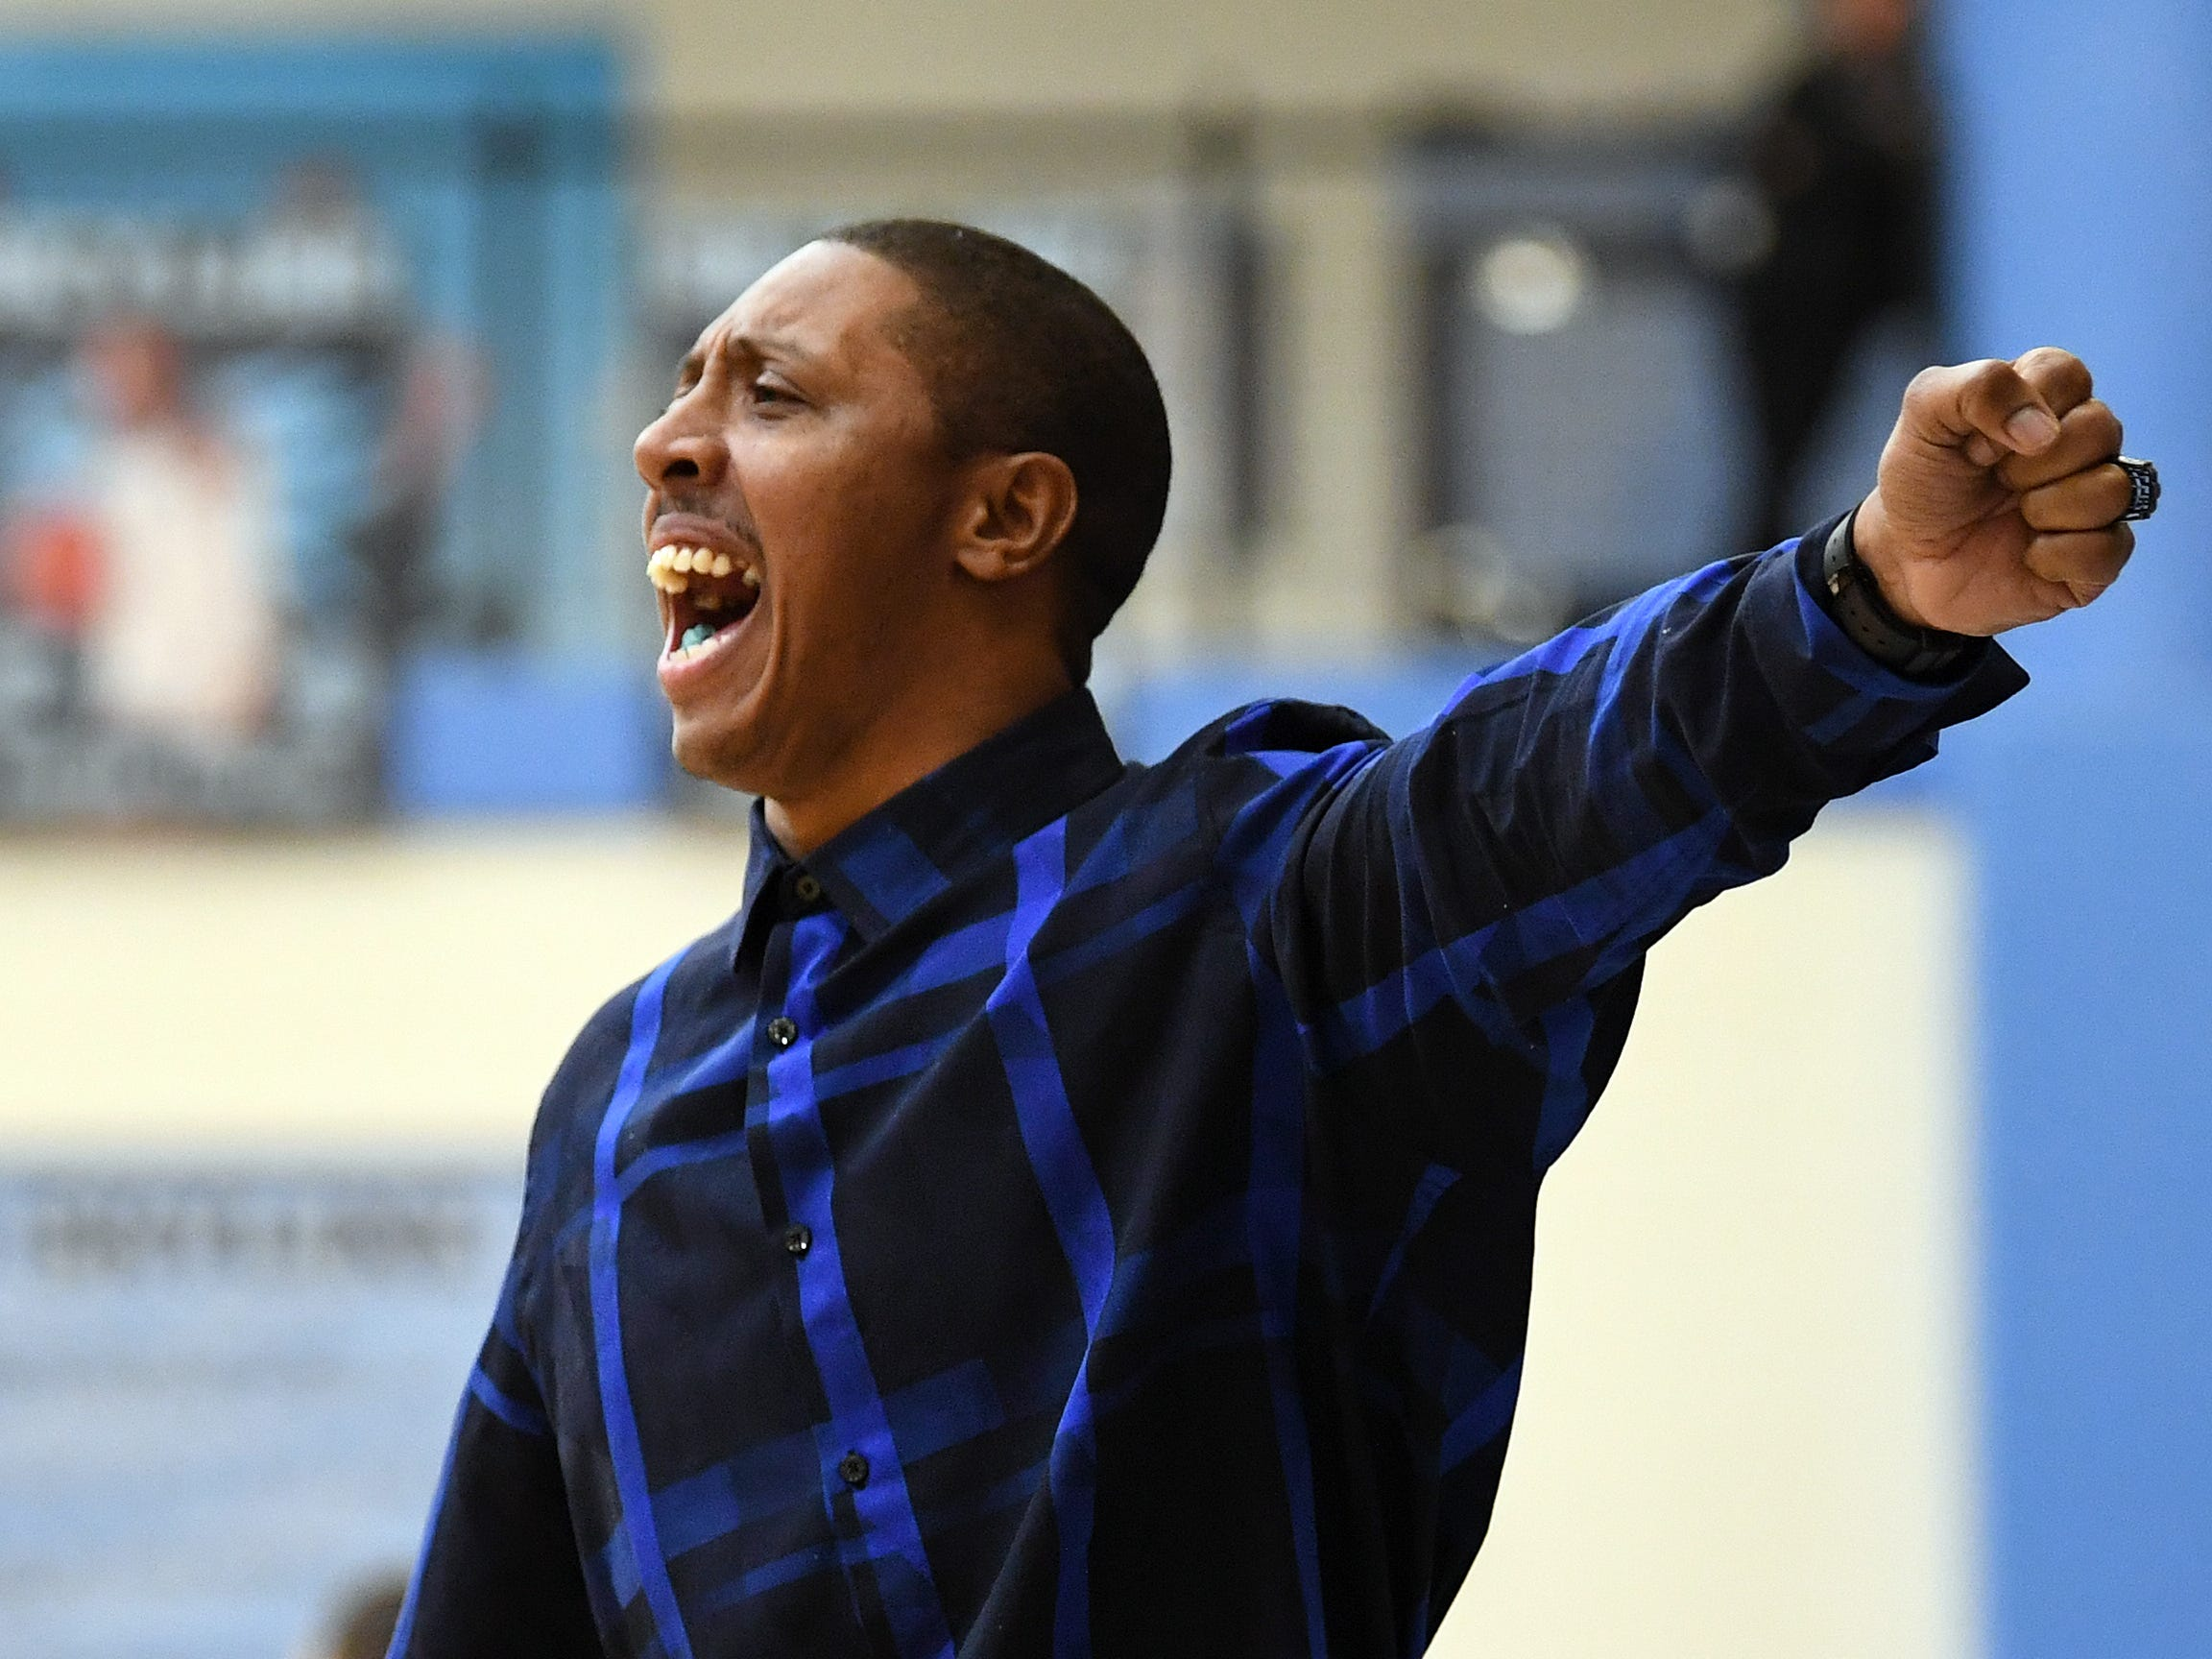 Wayne Memorial girls basketball head coach Jarvis Mitchell yells instructions to his team as they played against Ann Arbor Pioneer in the first quarter.